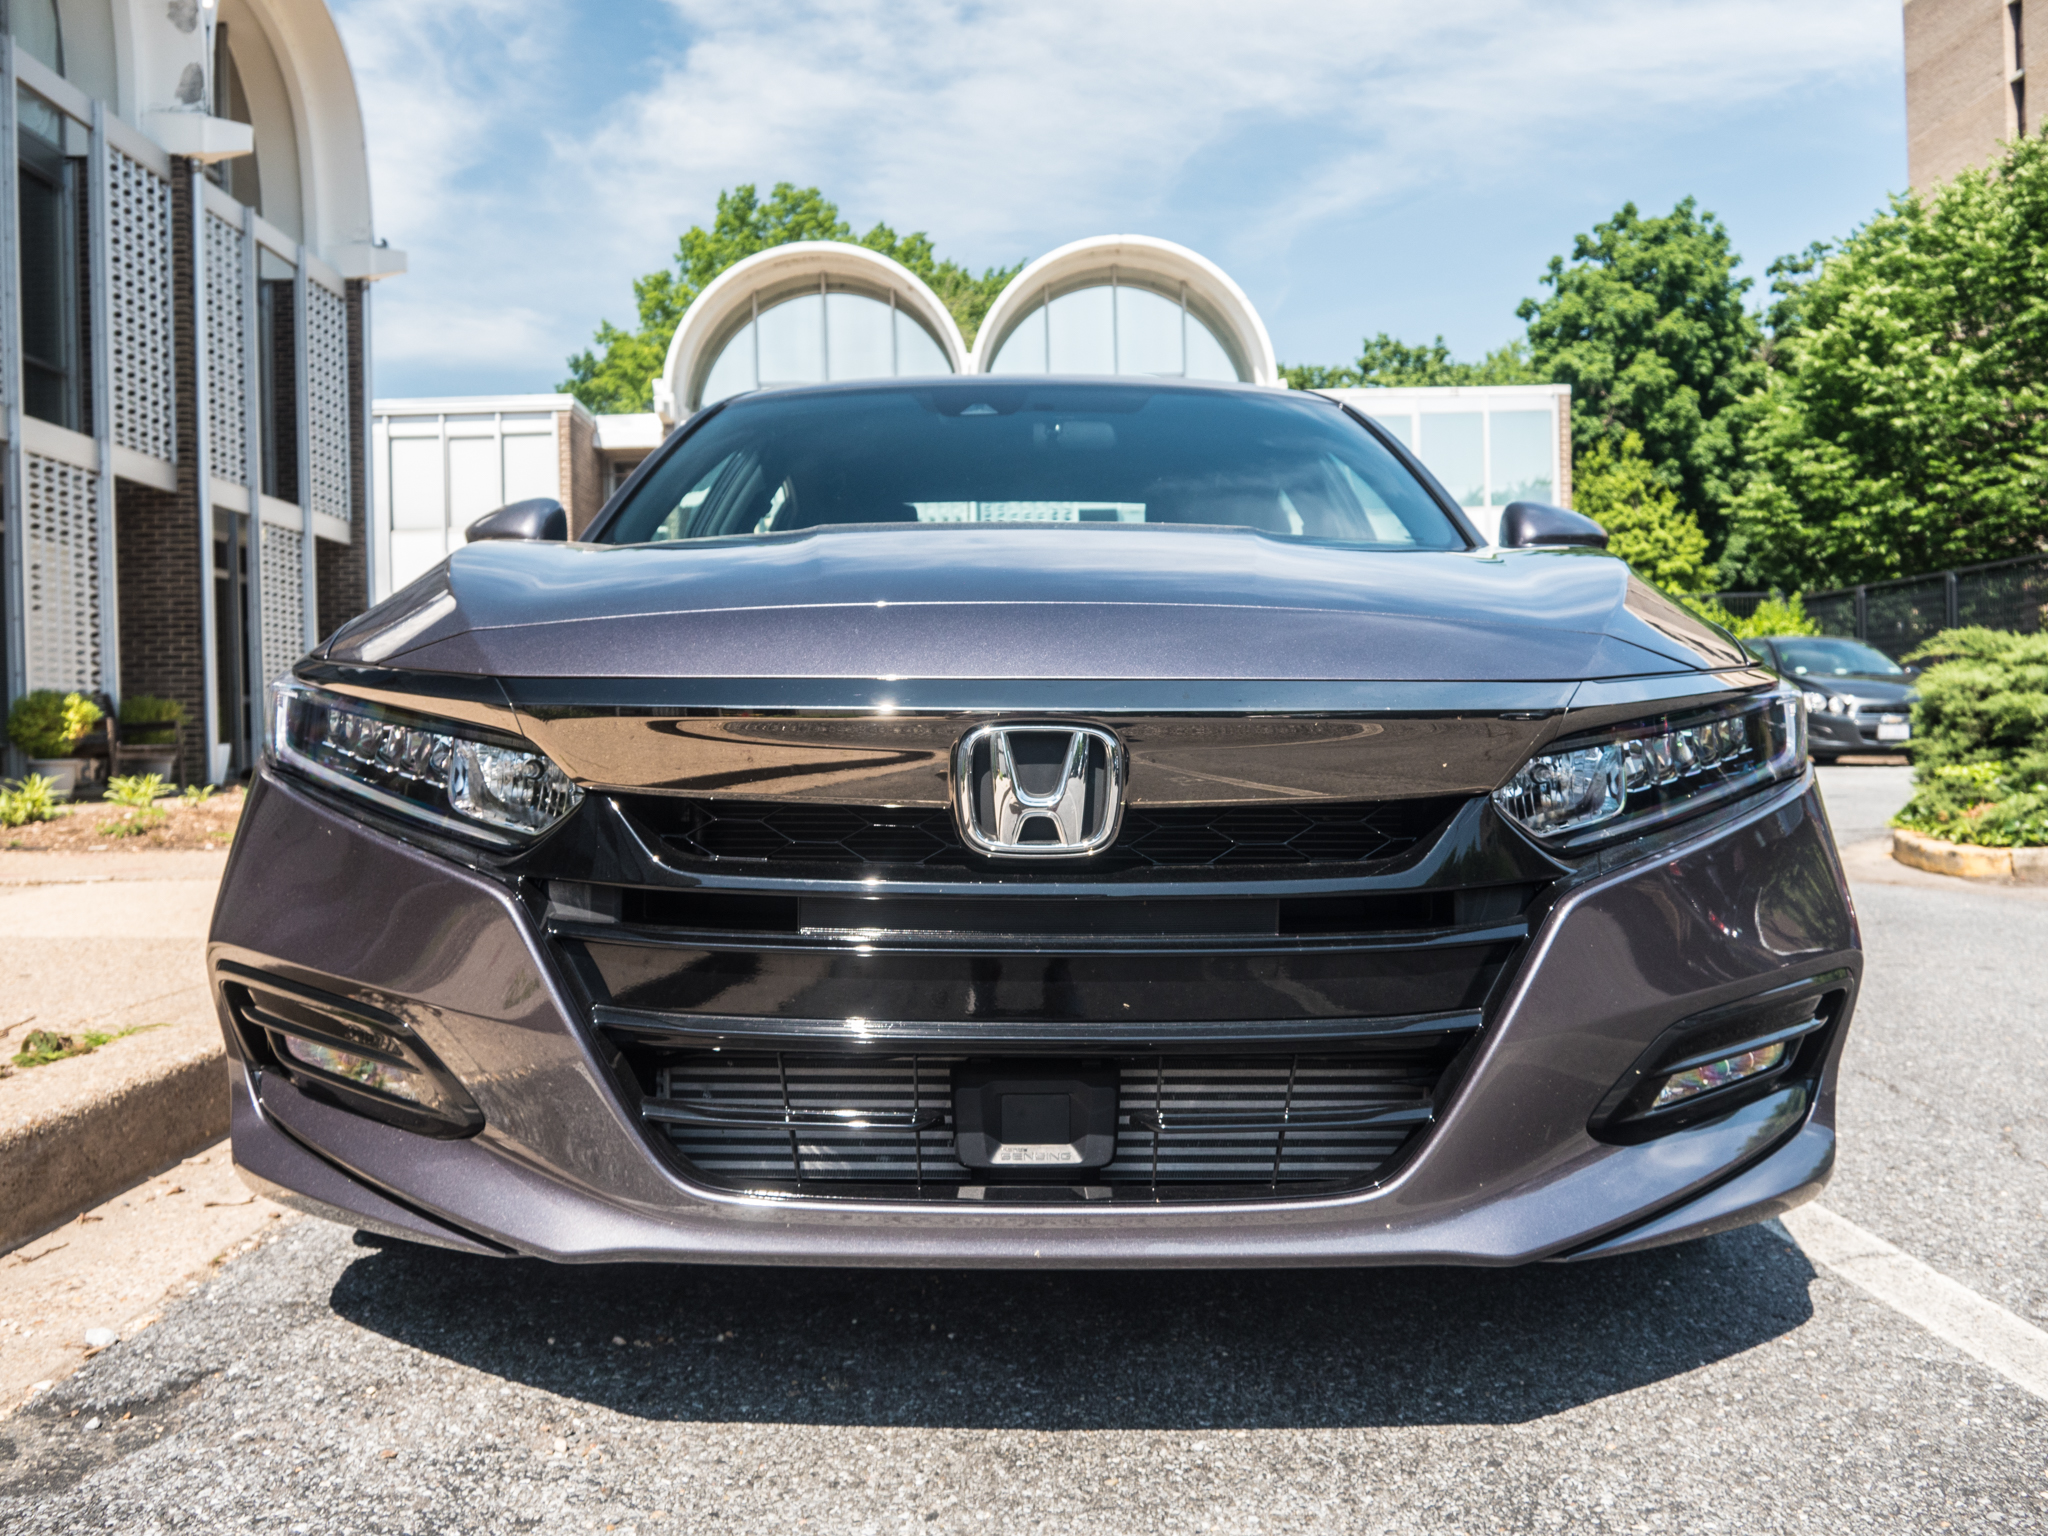 The front of the new Accord looks like someone forgot to fit a piece of trim at the factory. But that void lets you see the radar sensor that enables part of the Honda Sensing ADAS suite.